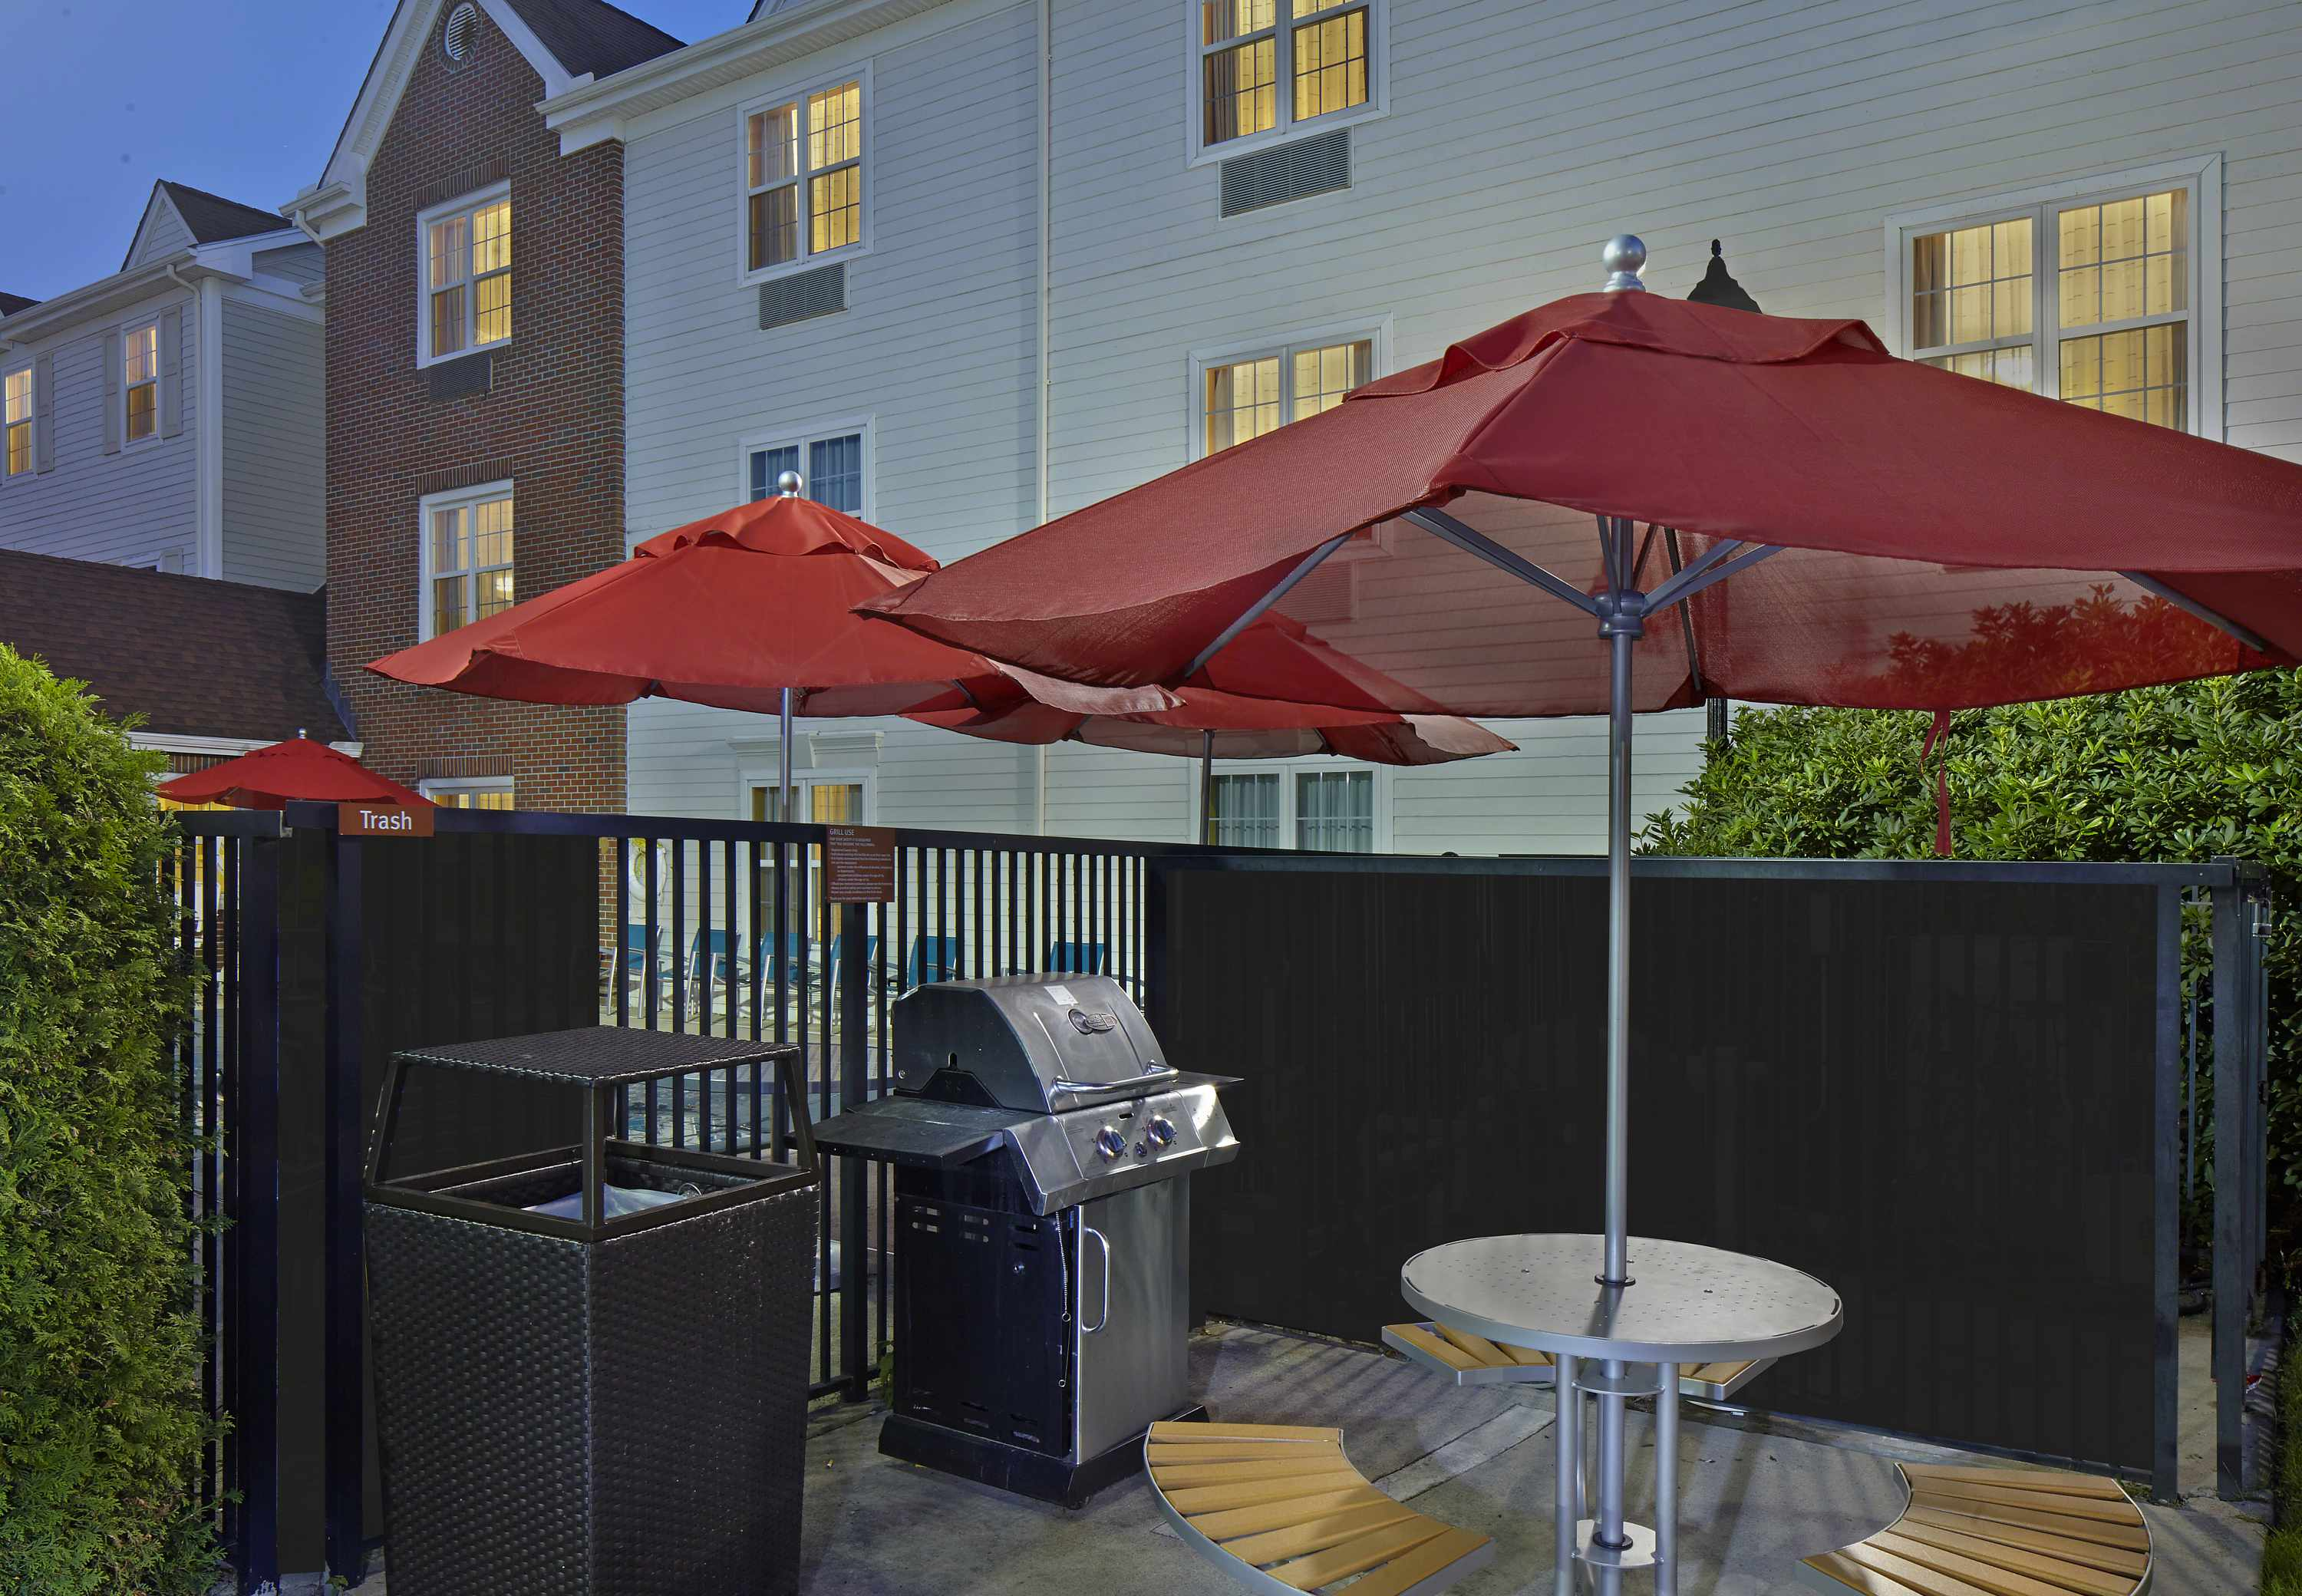 TownePlace Suites by Marriott Boston Tewksbury/Andover image 9